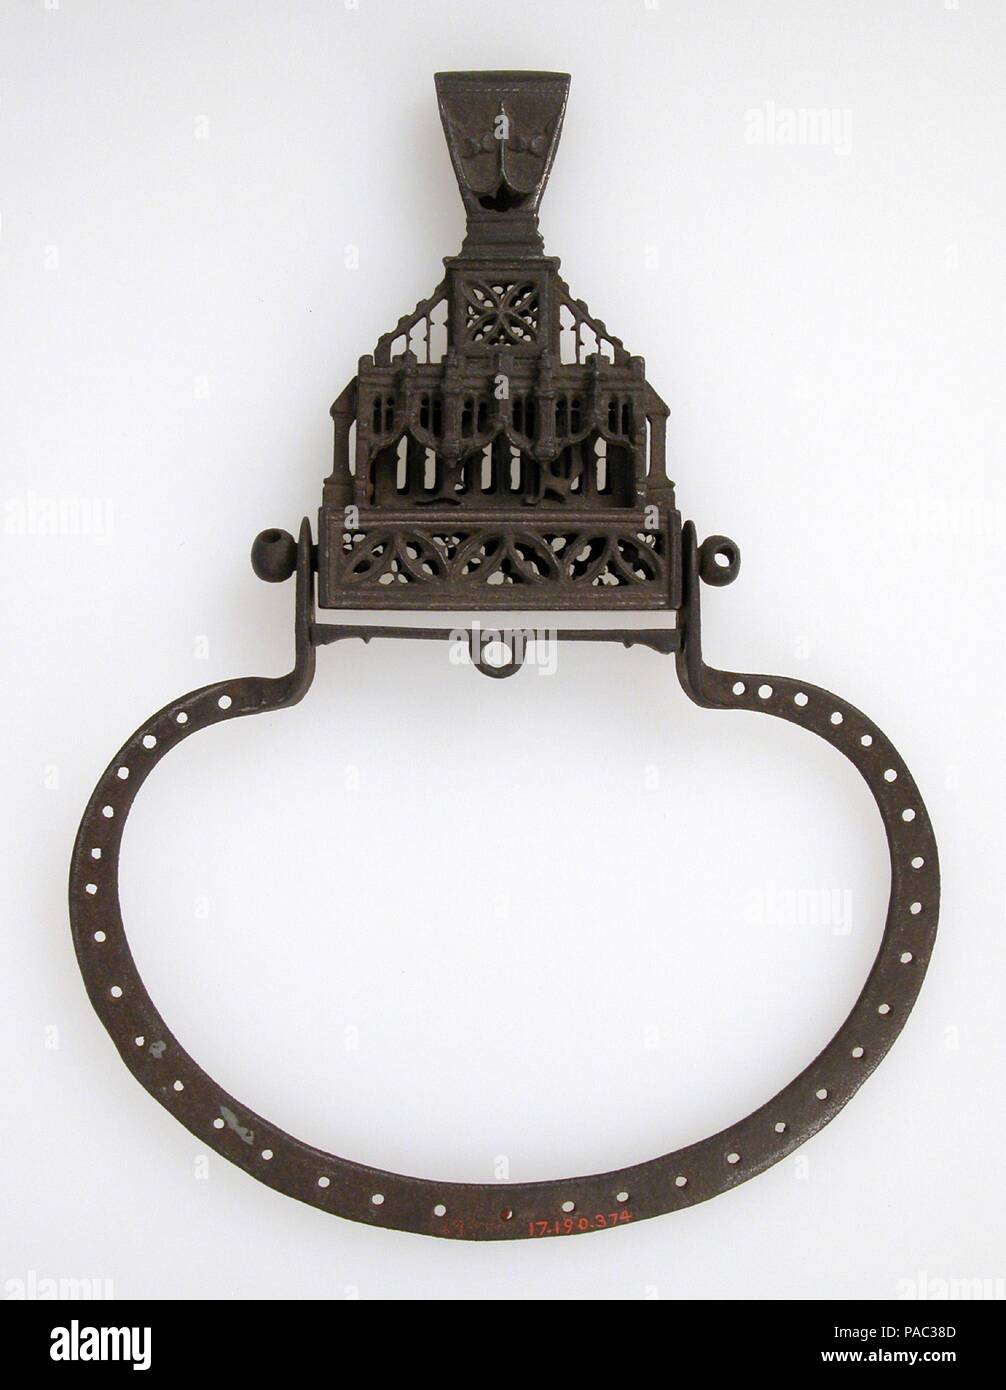 Purse Frame. Culture: French. Dimensions: Overall: 7 9/16 x 5 9/16 x ...